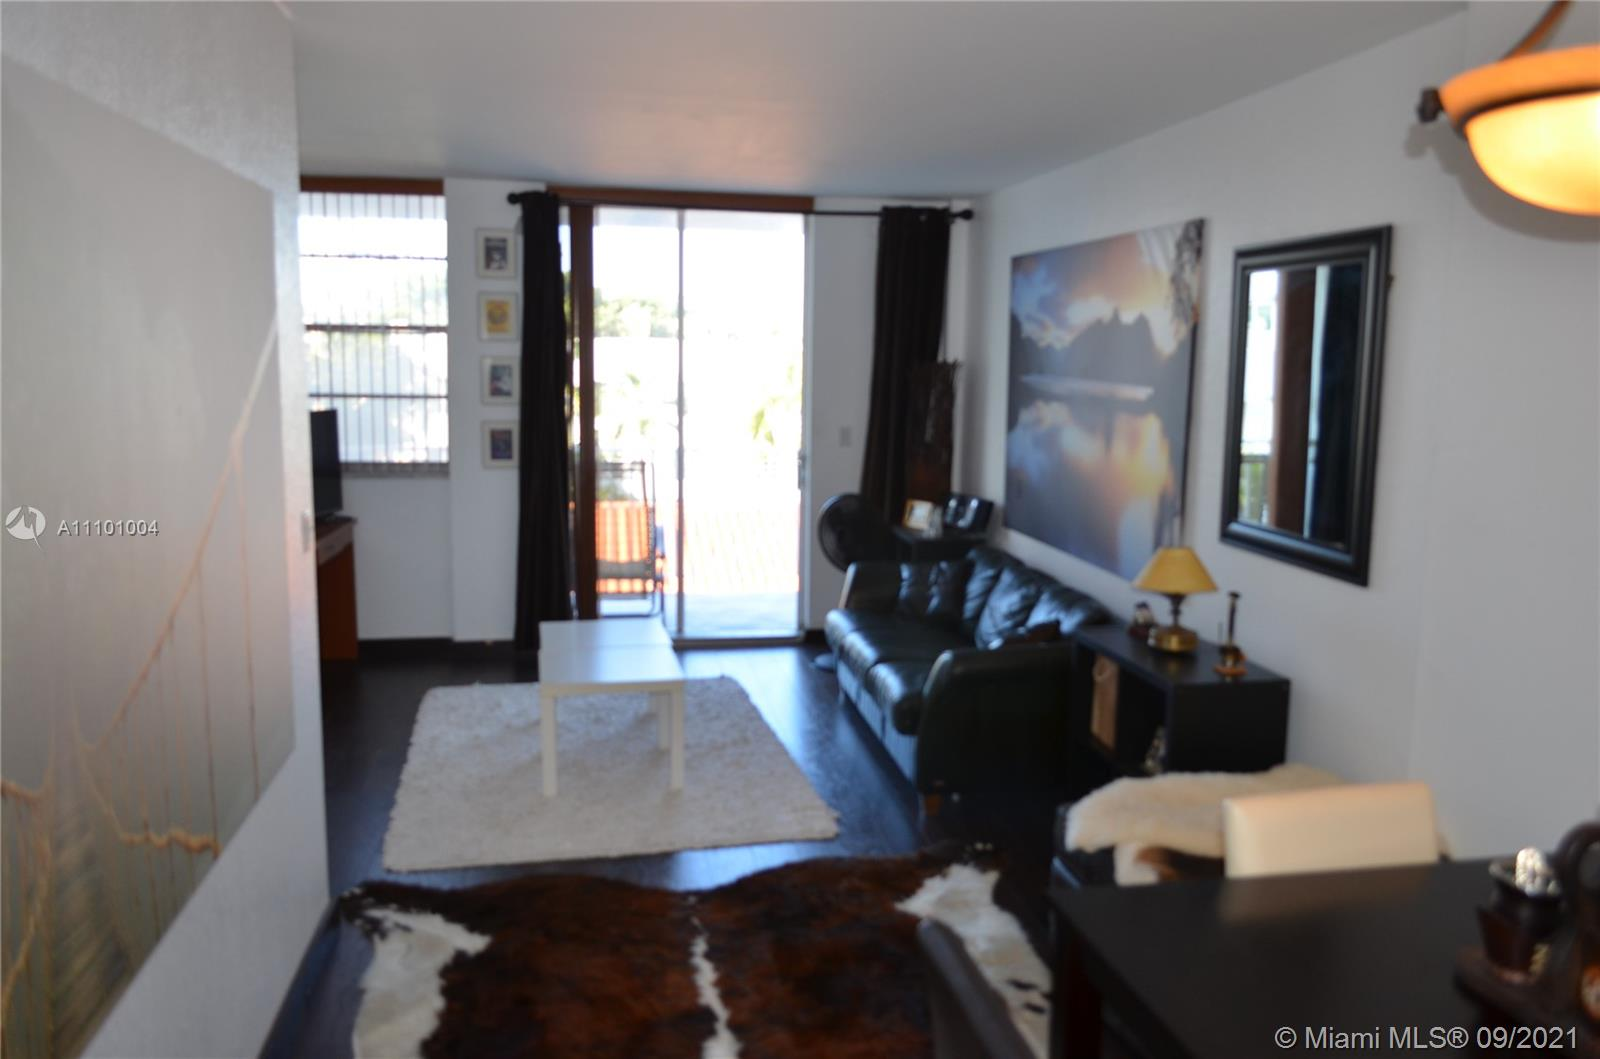 CLEARVIEW TOWERS CONDO Condo,For Sale,CLEARVIEW TOWERS CONDO Brickell,realty,broker,condos near me